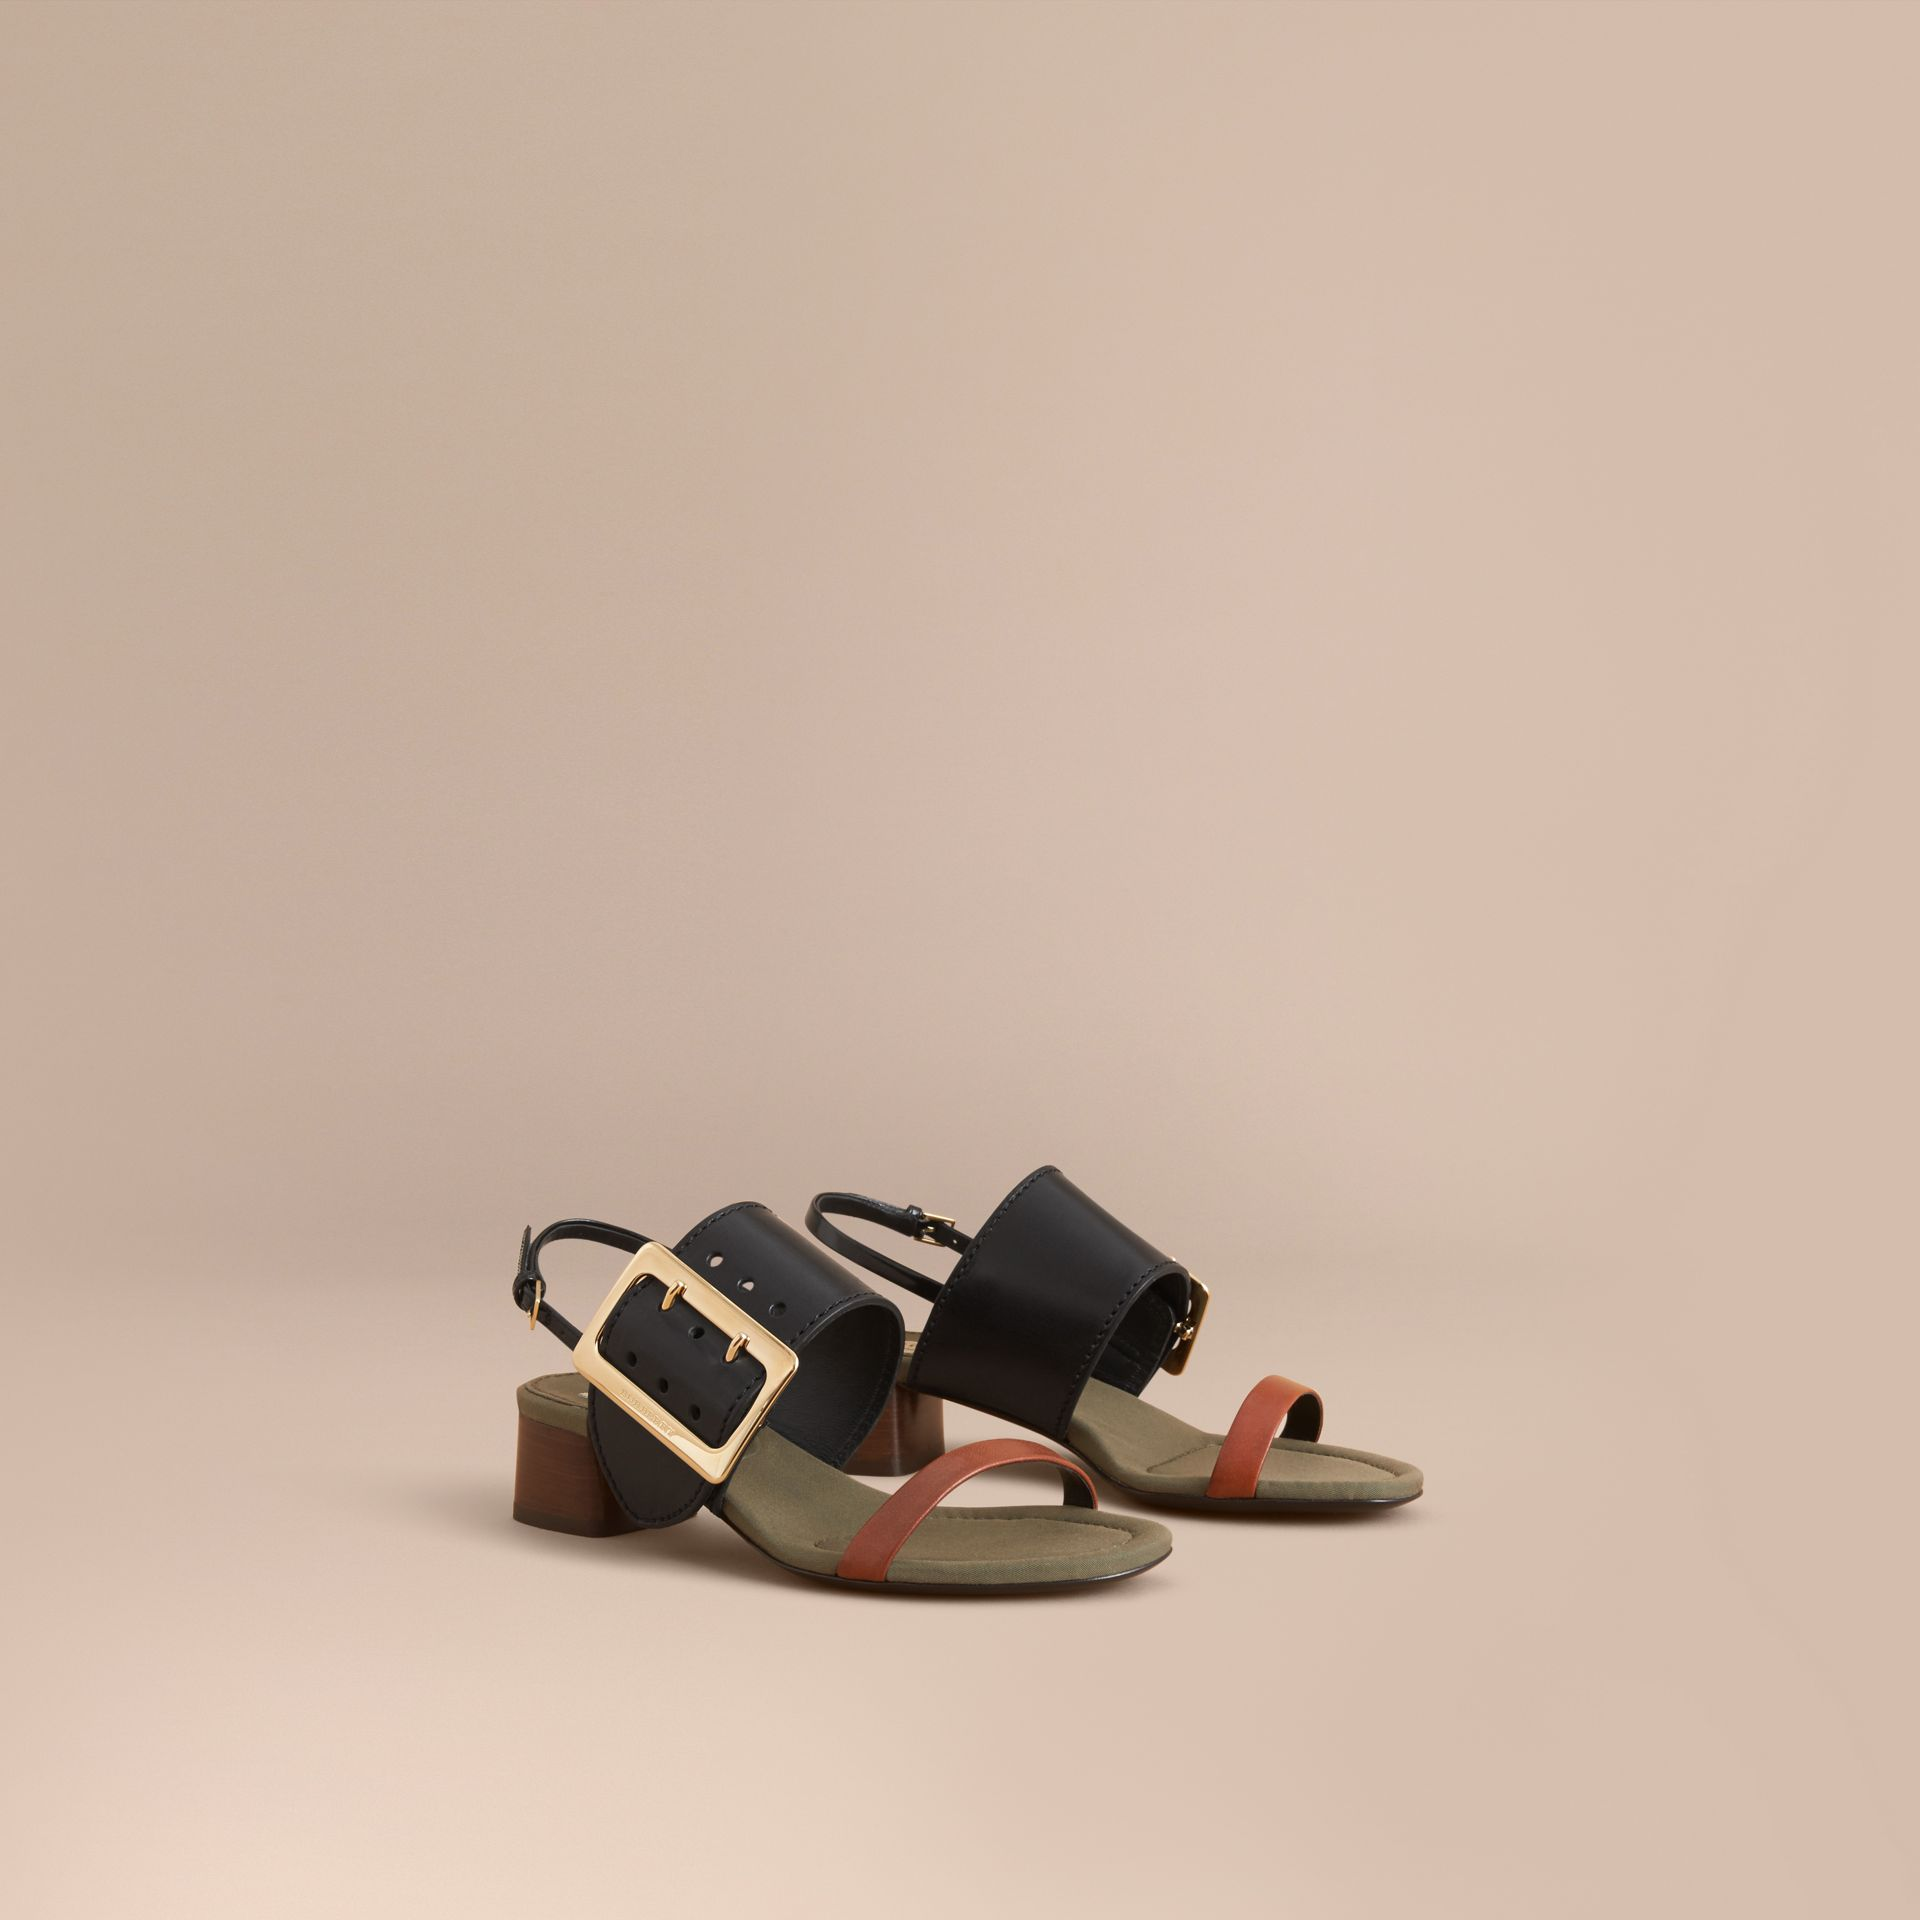 Buckle Detail Leather Mid-heel Sandals - Women | Burberry - gallery image 1